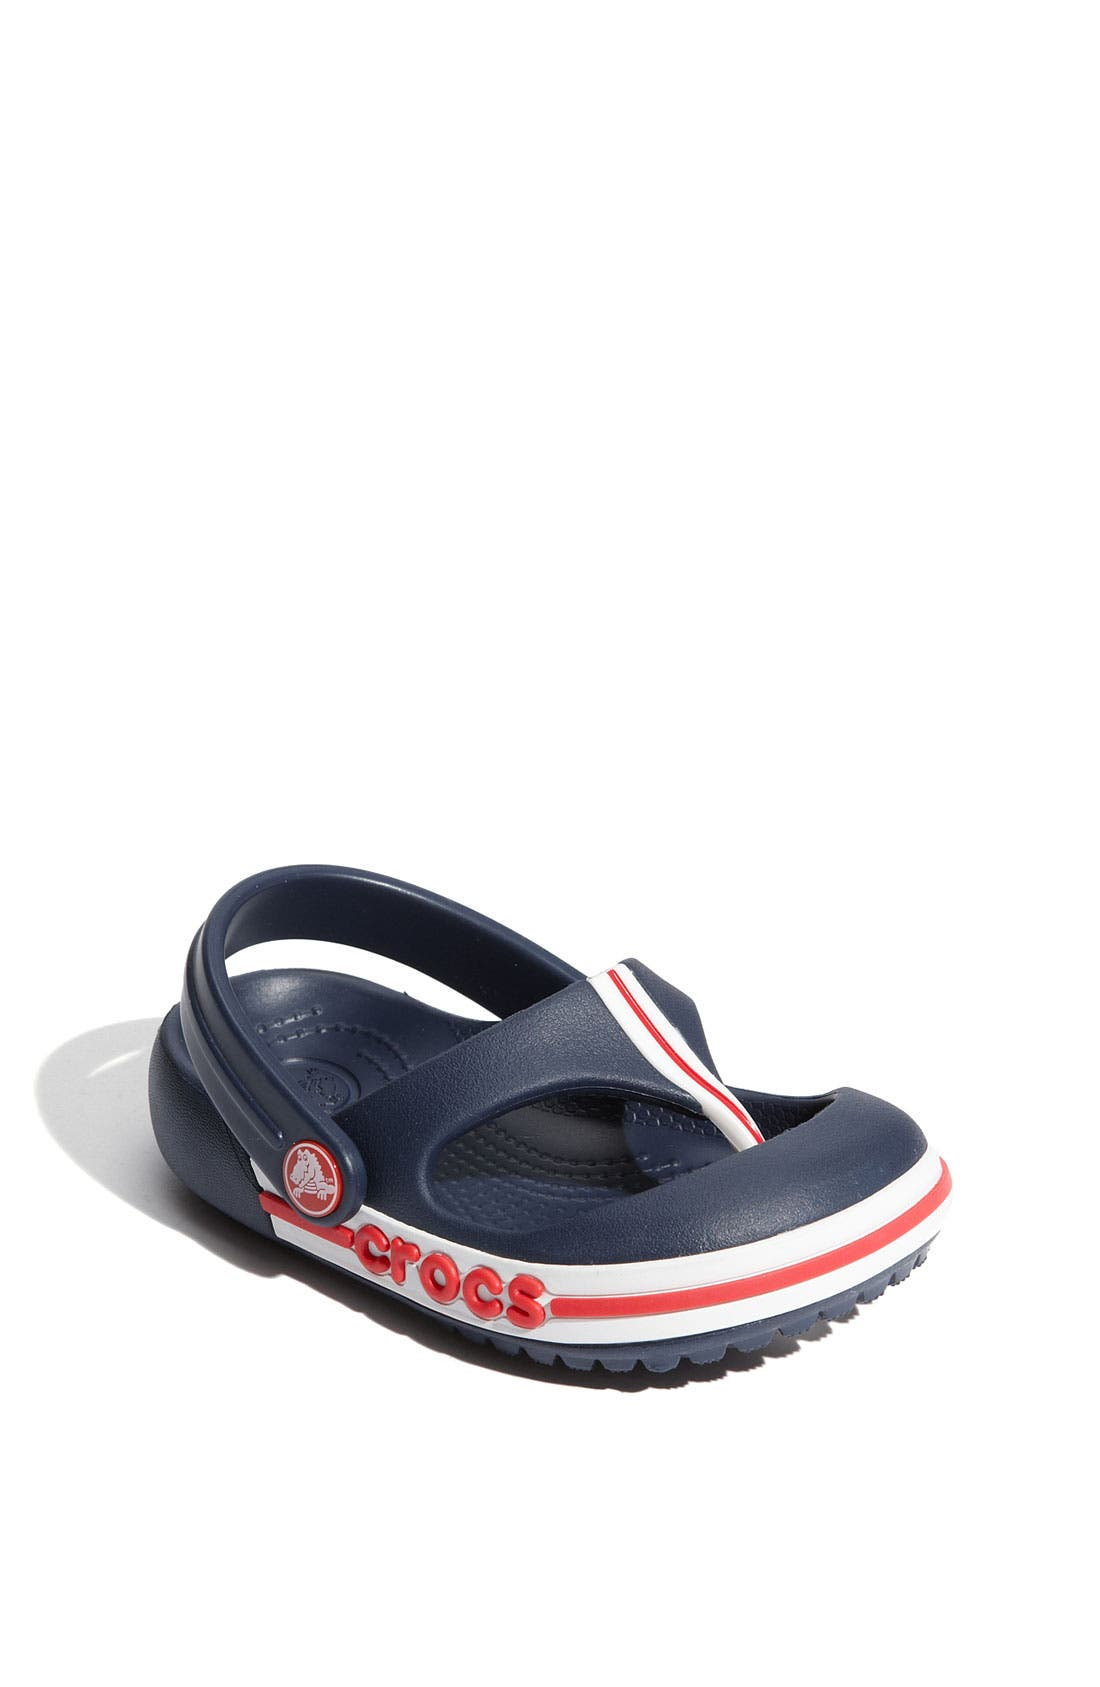 Alternate Image 1 Selected - CROCS™ 'Crocband' Flip Flop (Walker, Toddler & Little Kid)